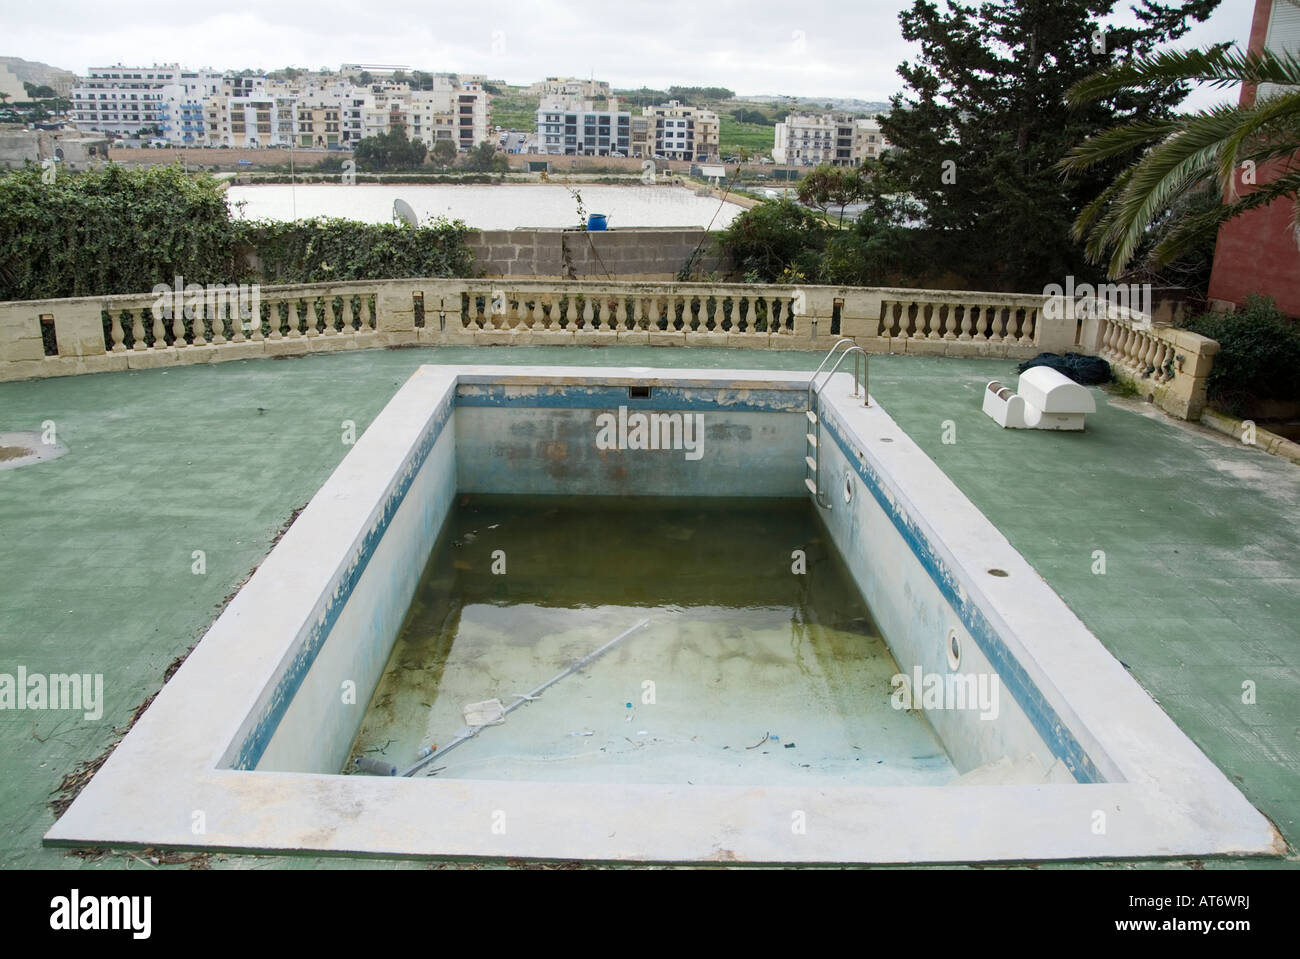 Empty Swimming Pool Bad Hotel Rough Dirty Area Stock Photo